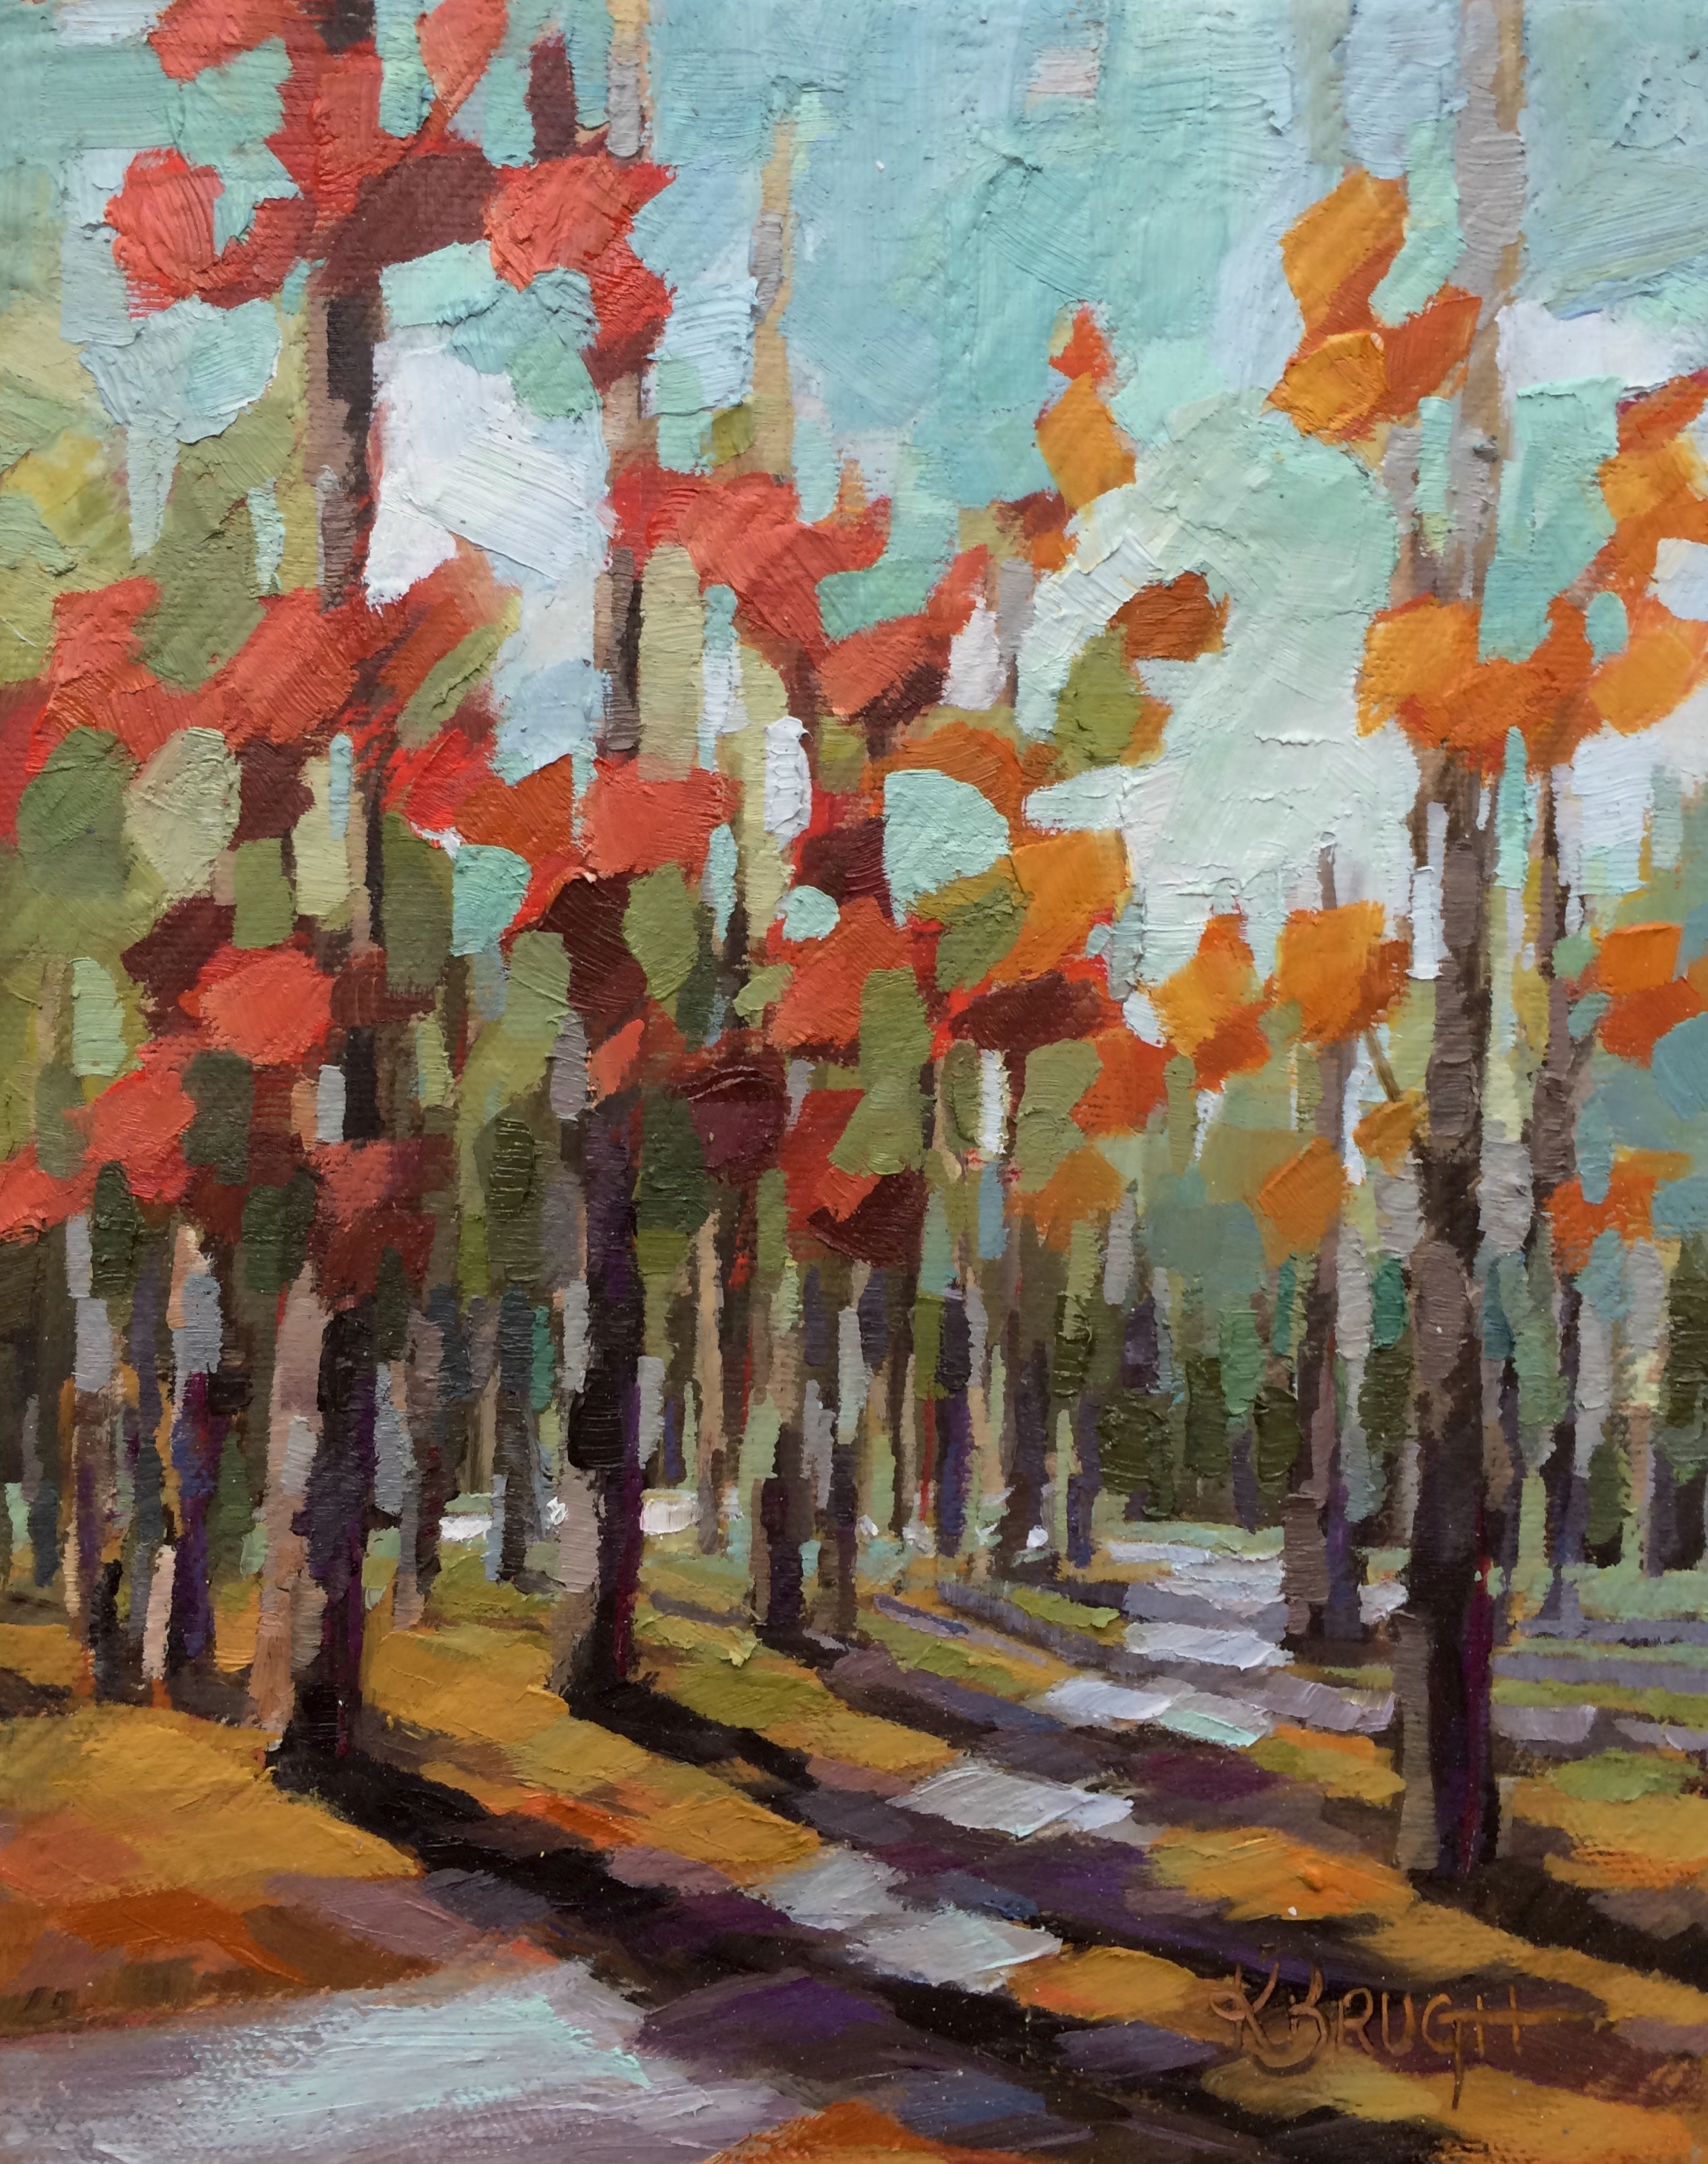 Autumn at Freedom Park by Kelley Brugh, 8x10, Oil on canvas New painting inspired by a family stroll through Freedom Park.